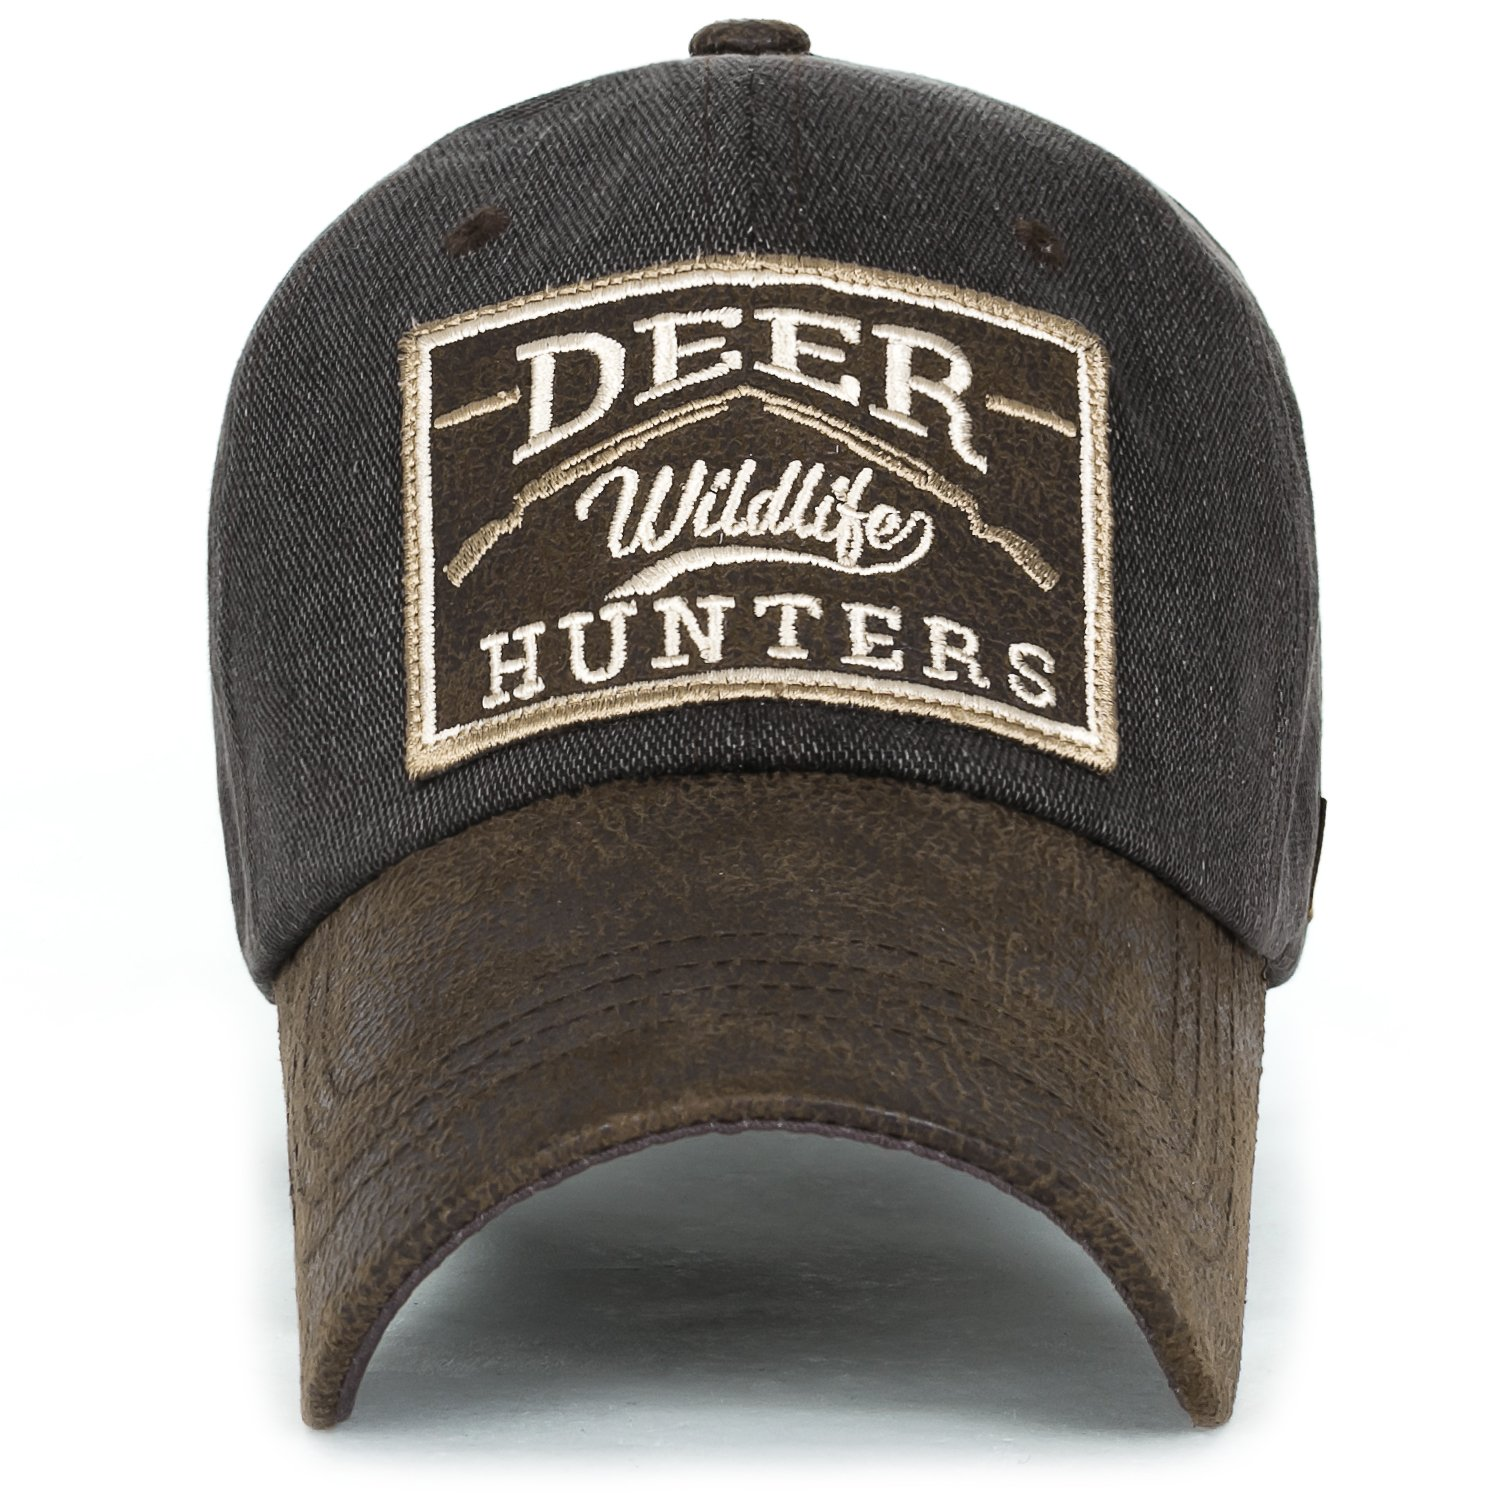 ililily DEER HUNTERS Velcro Patch Tactical Operator Hat